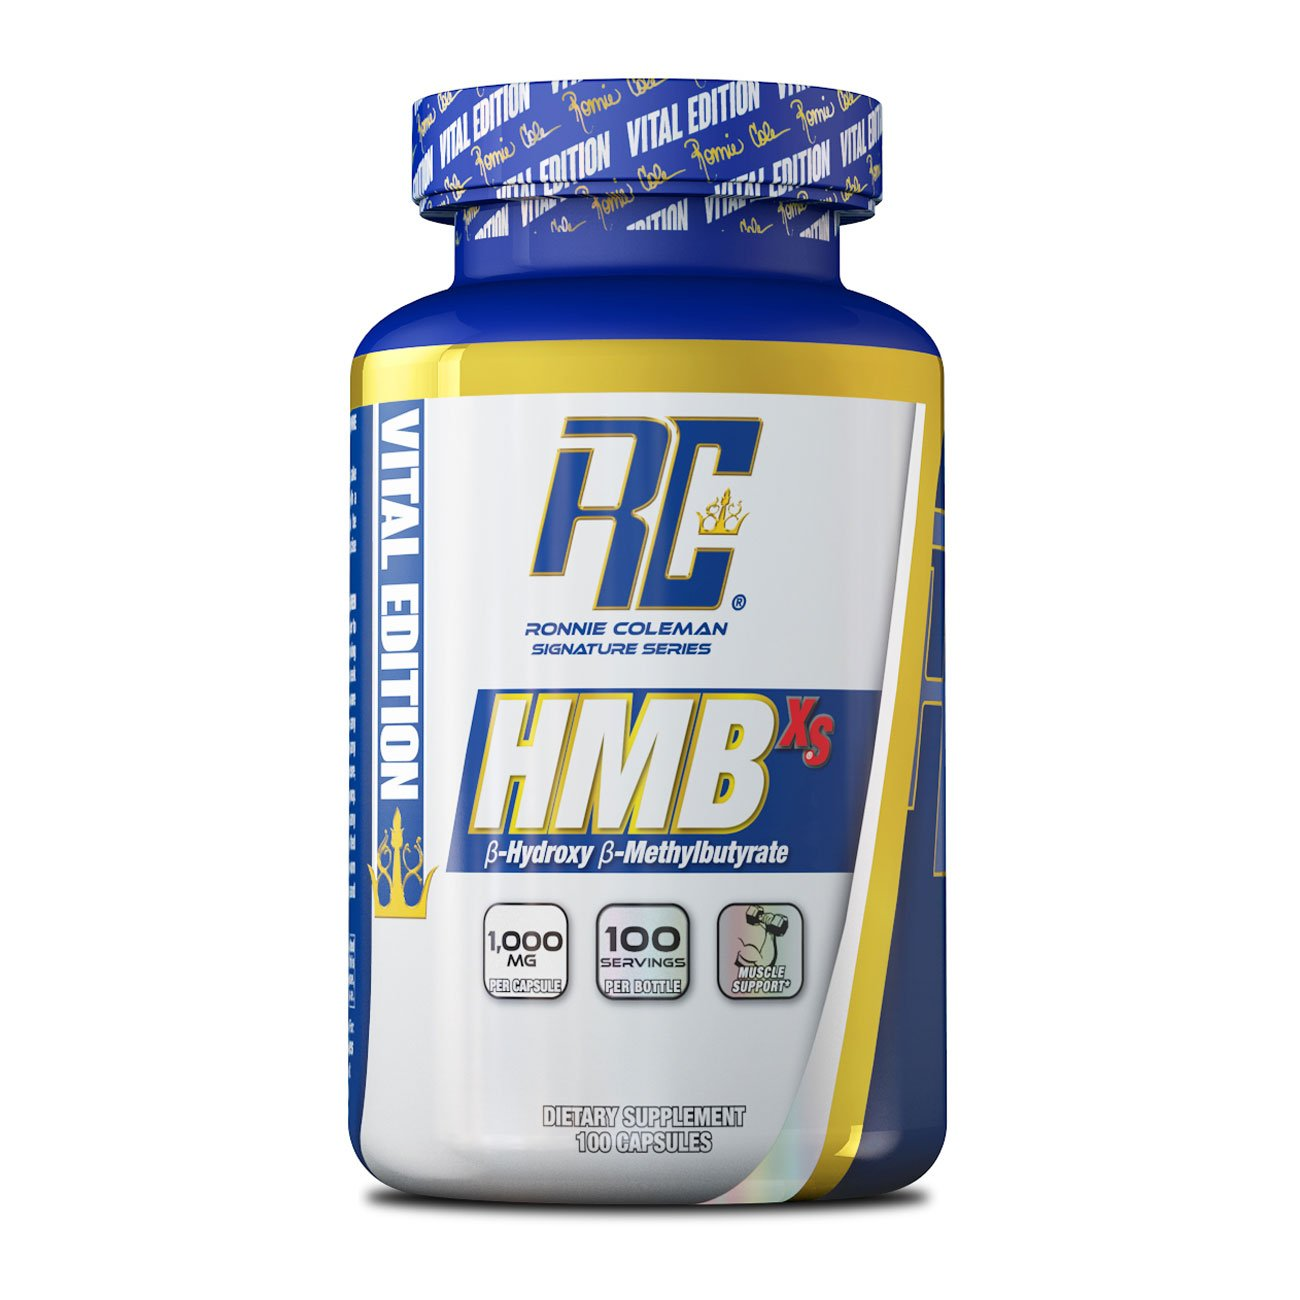 Ronnie Coleman Signature Series Hmb 1000 Beta-Hydroxy Beta-Methyl Butyrate Workout Recovery Supplement, 100 Count